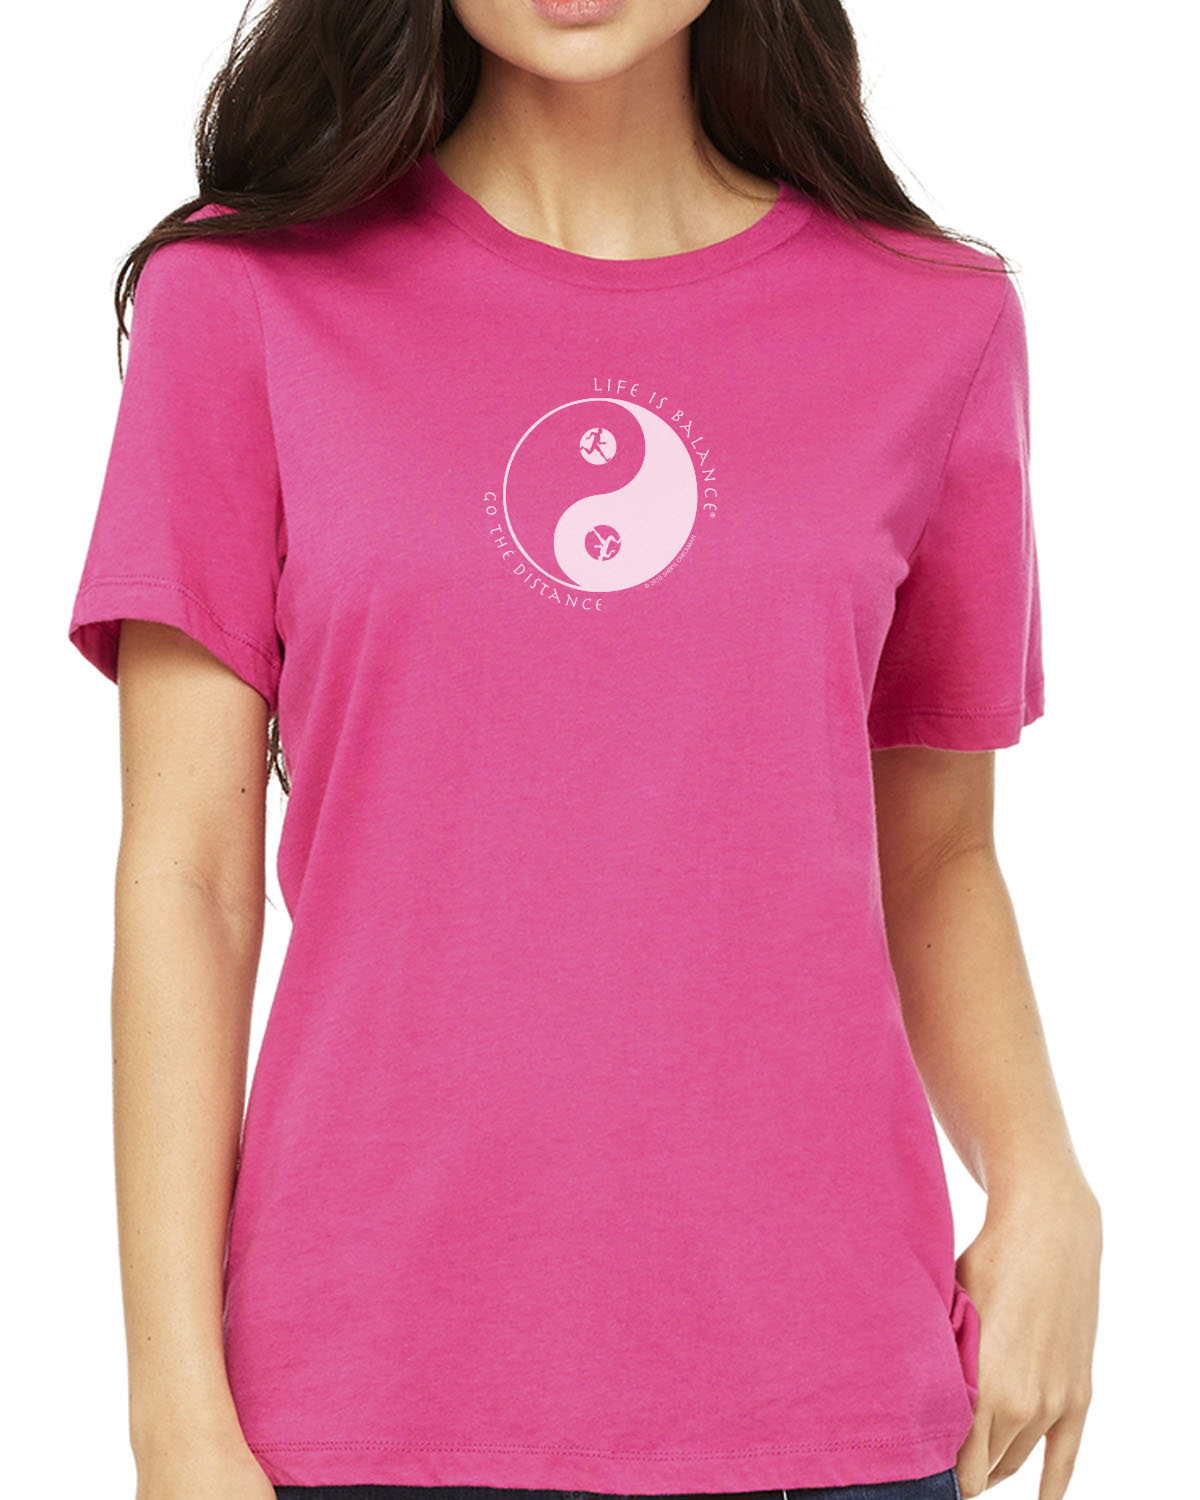 Women's short sleeve t-shirt (berry)